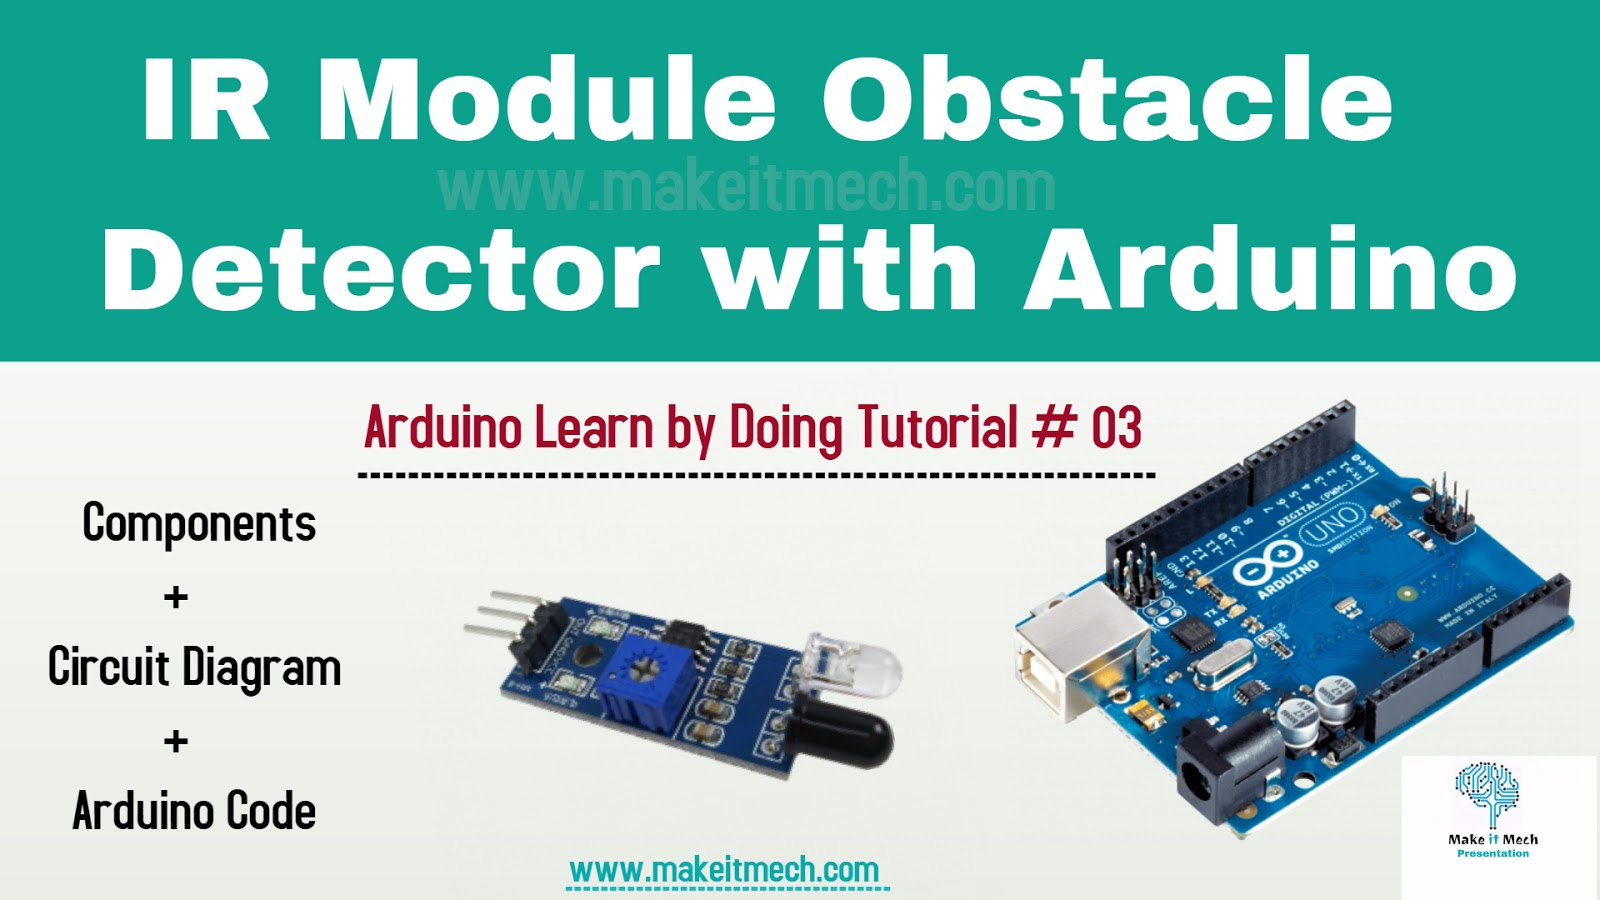 Labwire How To Use Ir Module With Arduino Obstacle Led And Photo Diode Object Detection Circuit Diagram Sensor Tutorial Complete Code